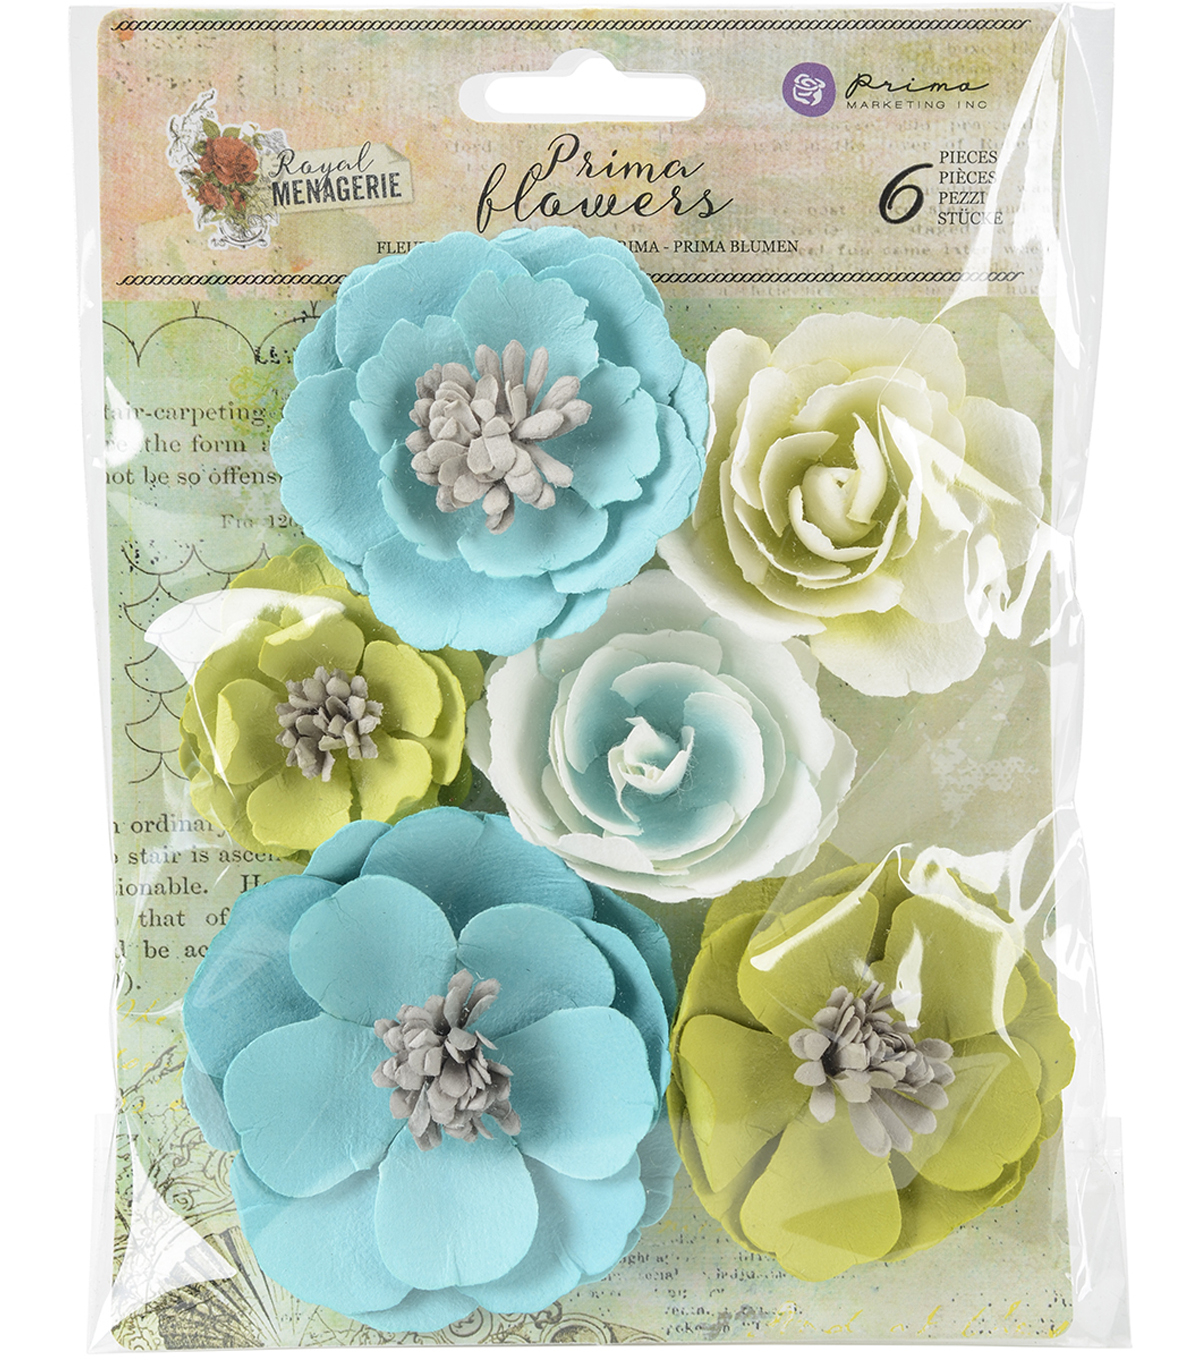 Prima Marketing Royal Menagerie 6 Pk Mulberry Paper Flowers Louise